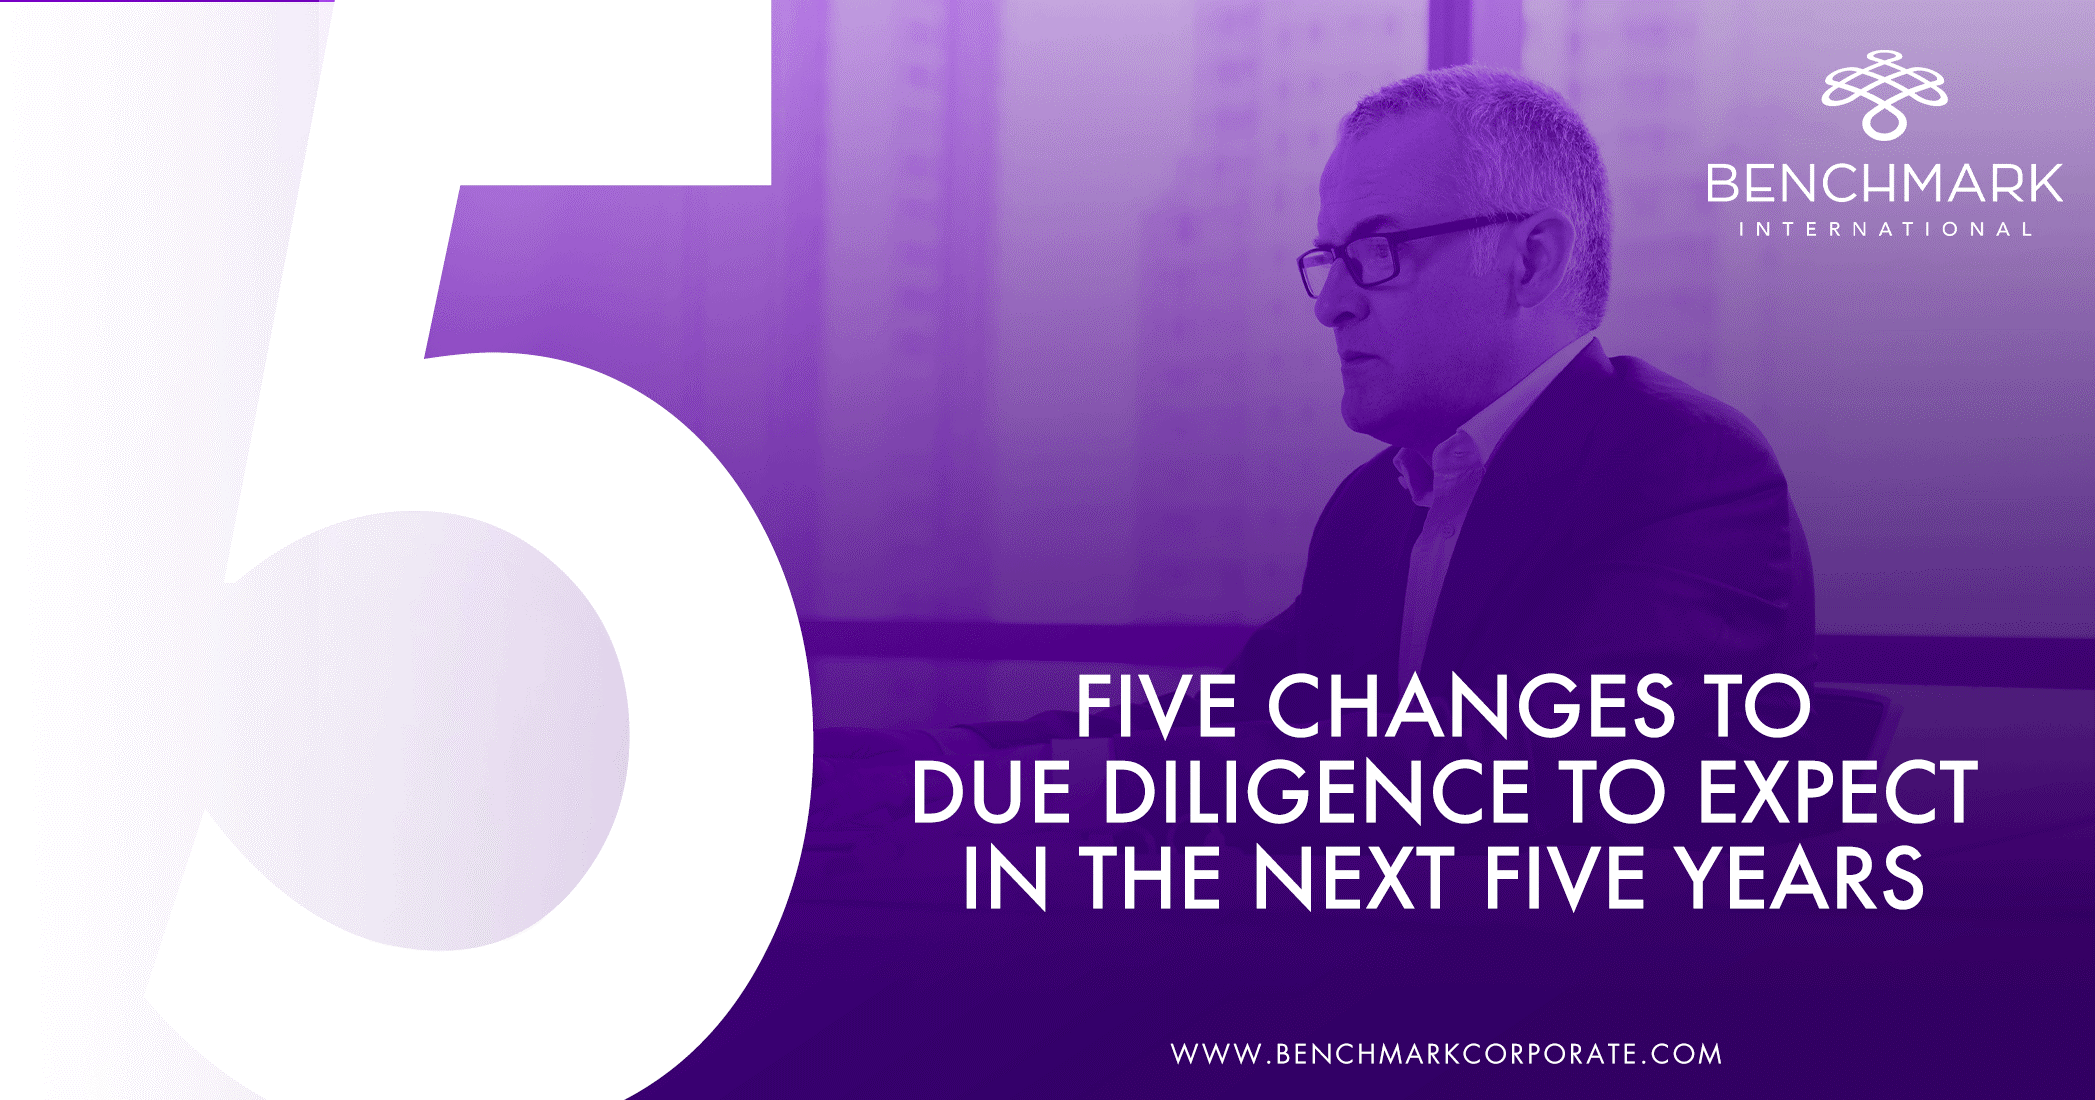 Five Changes to Due Diligence to Expect in the Next Five Years